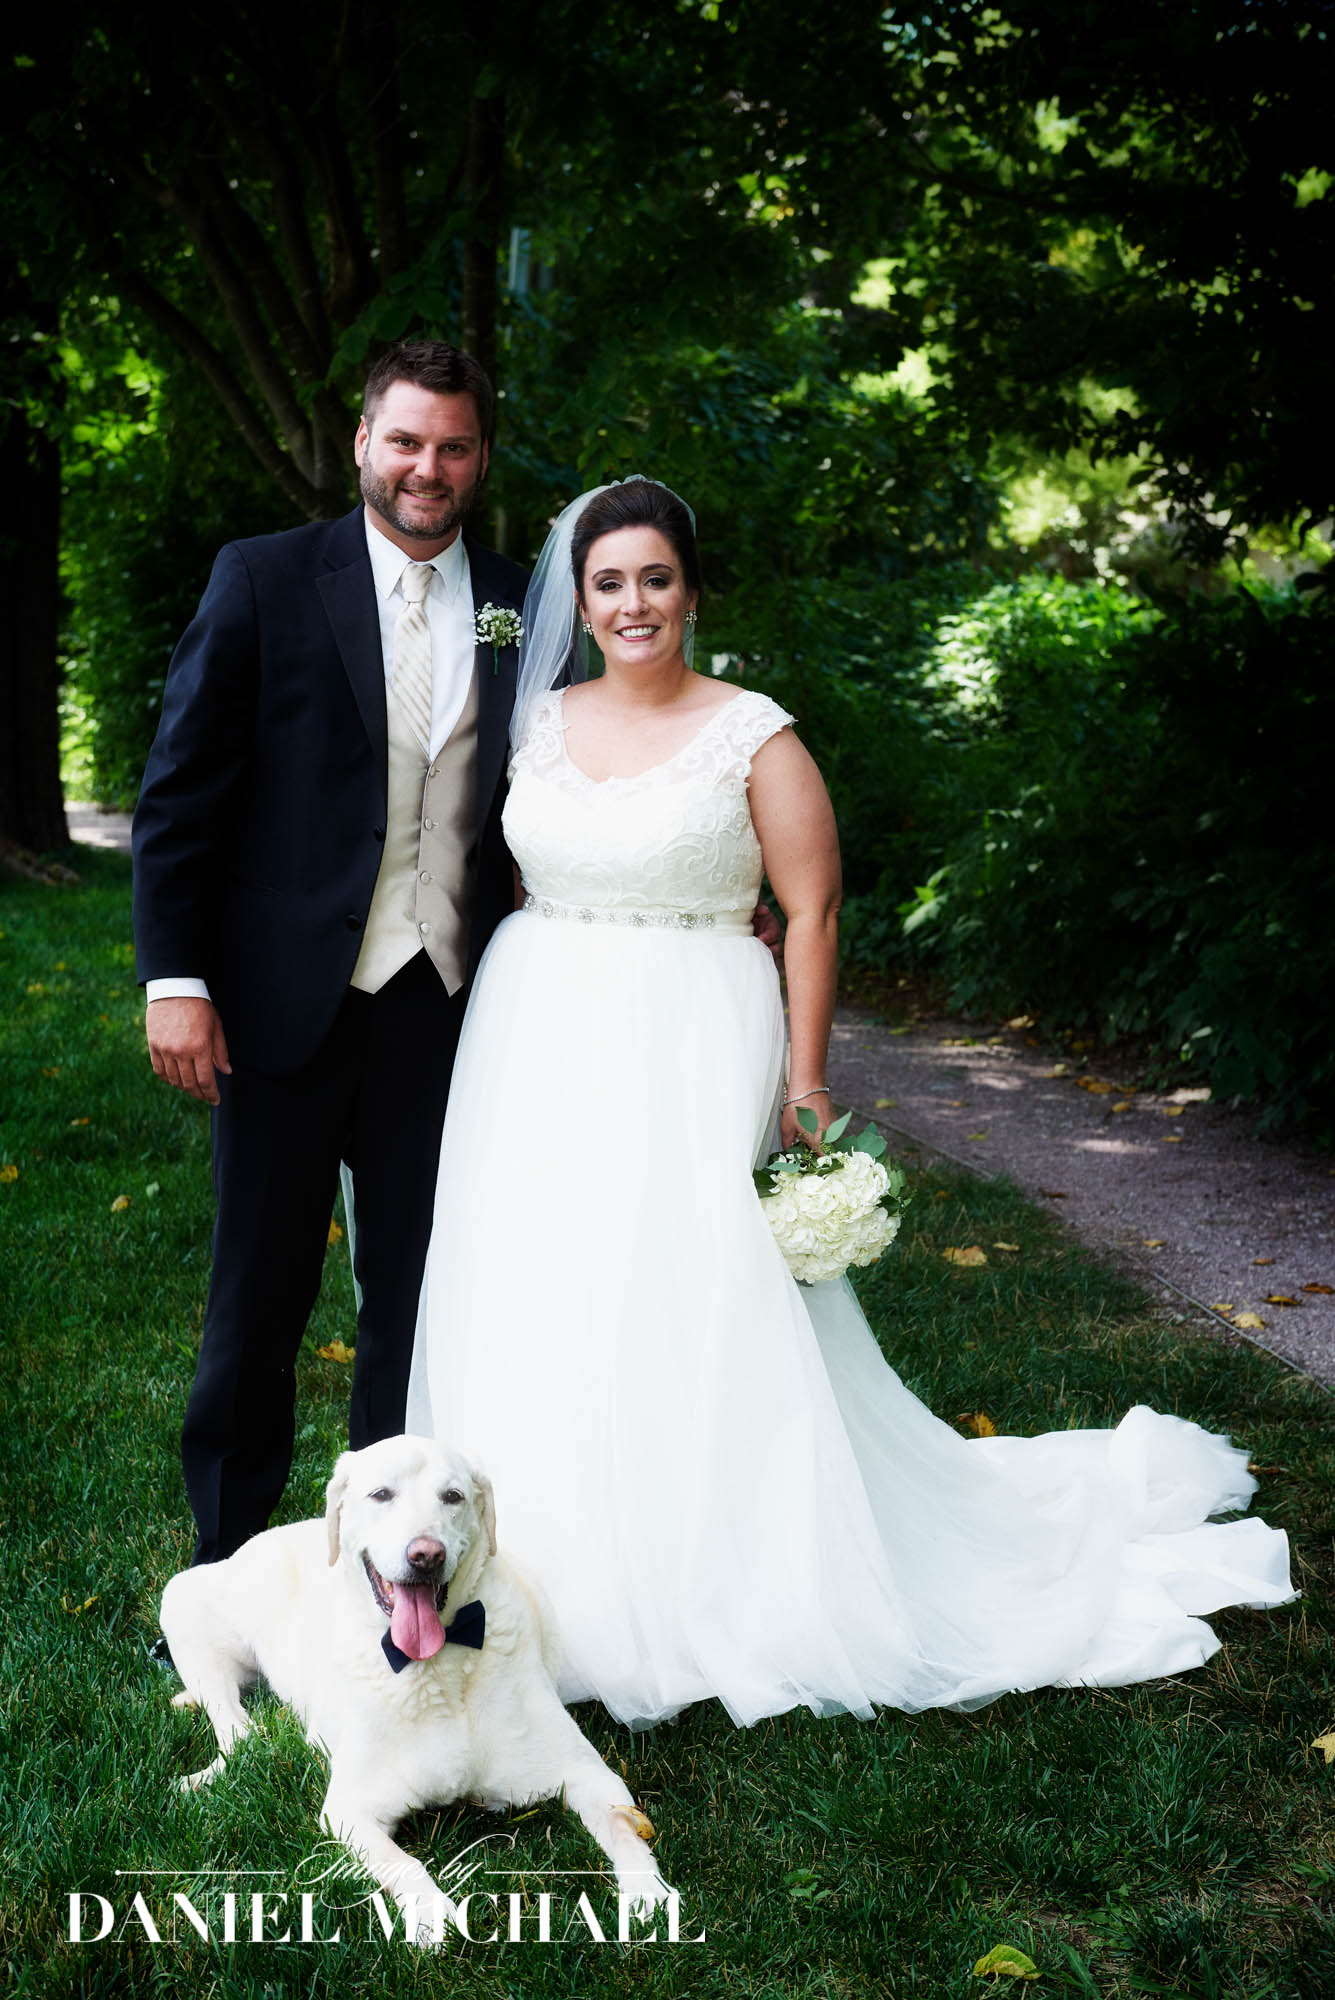 Wedding Photography with Dog